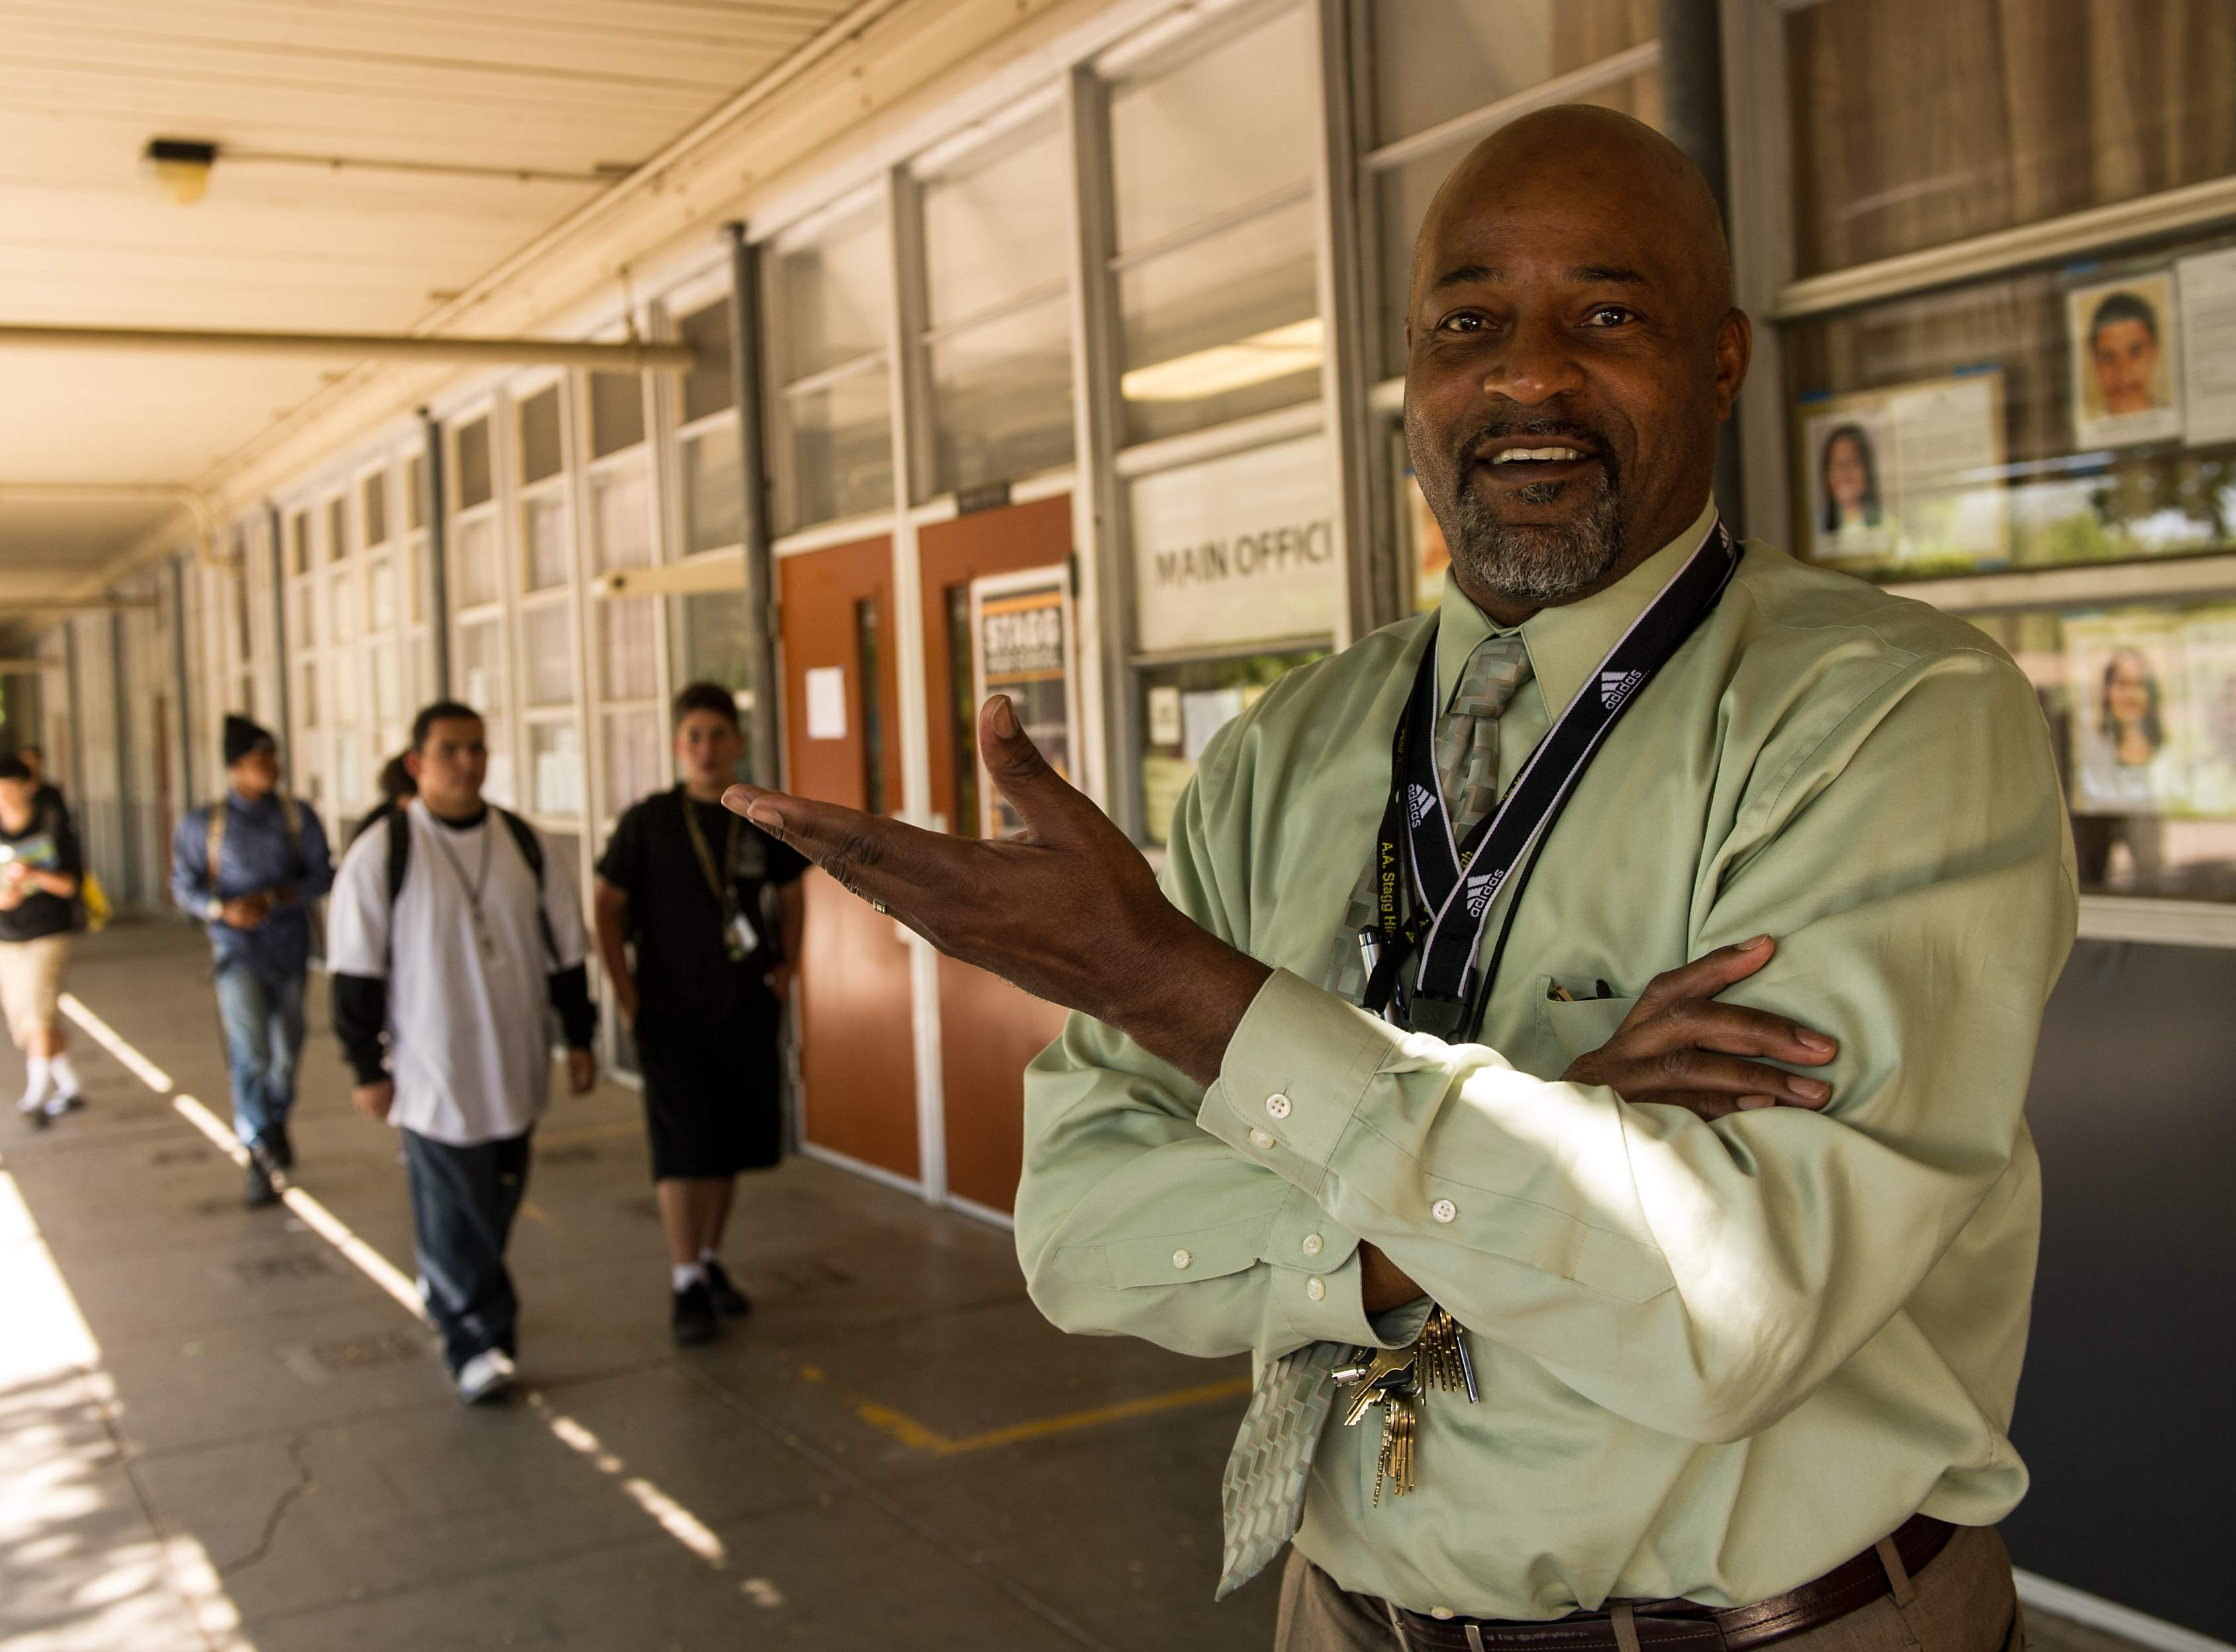 Principal Phillips at Stagg High School in Stockton